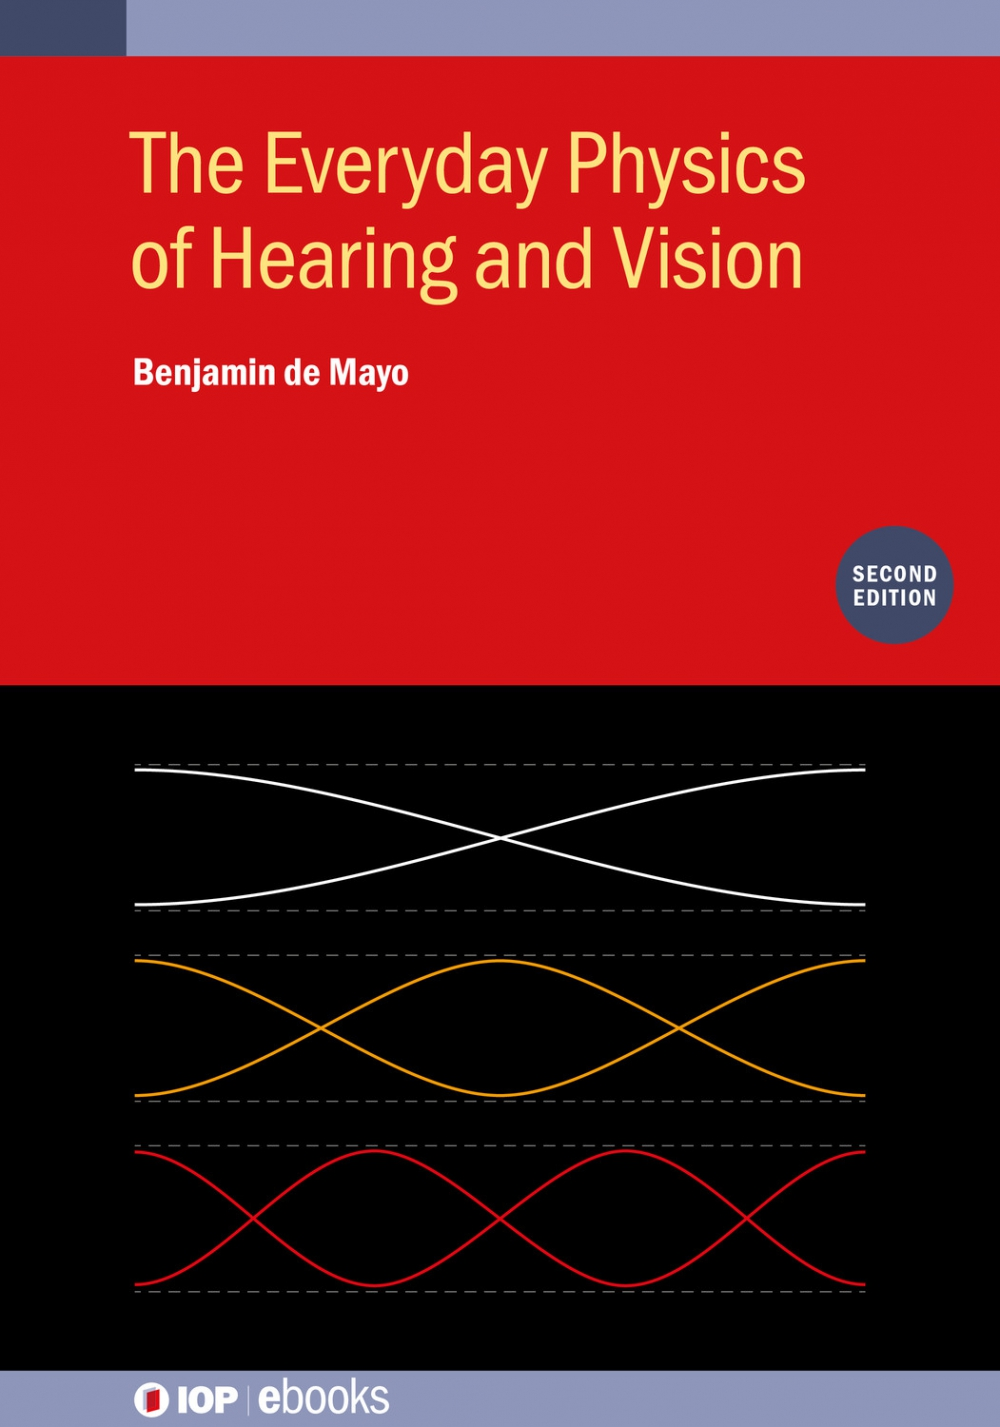 Jacket image for The Everyday Physics of Hearing and Vision (Second Edition)